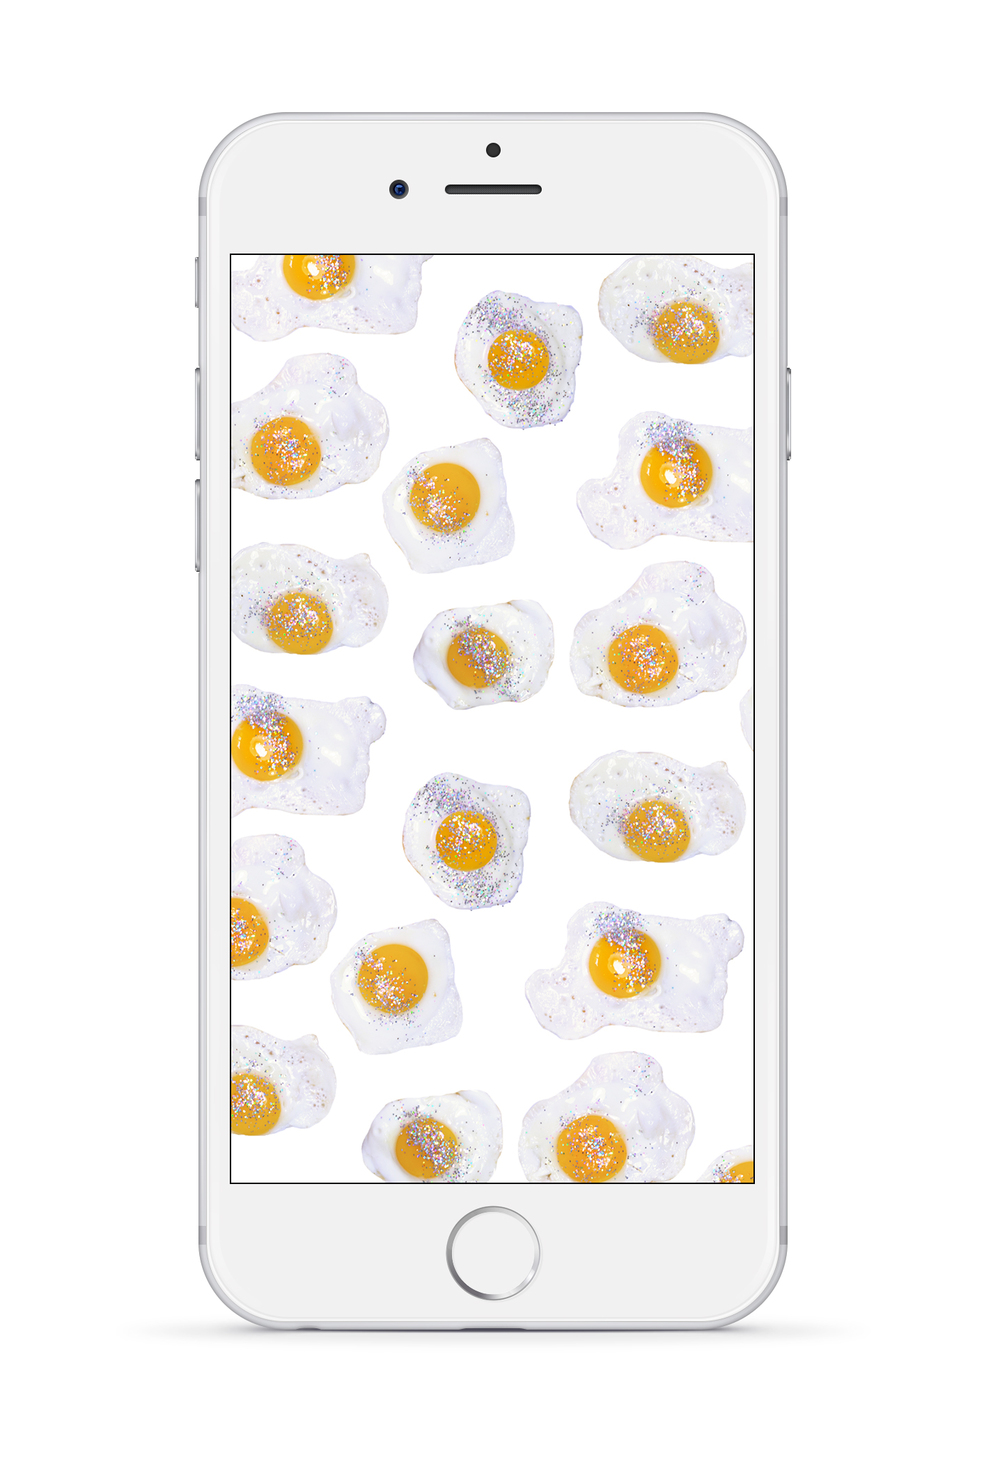 egg-wallpaper-mockup.jpg